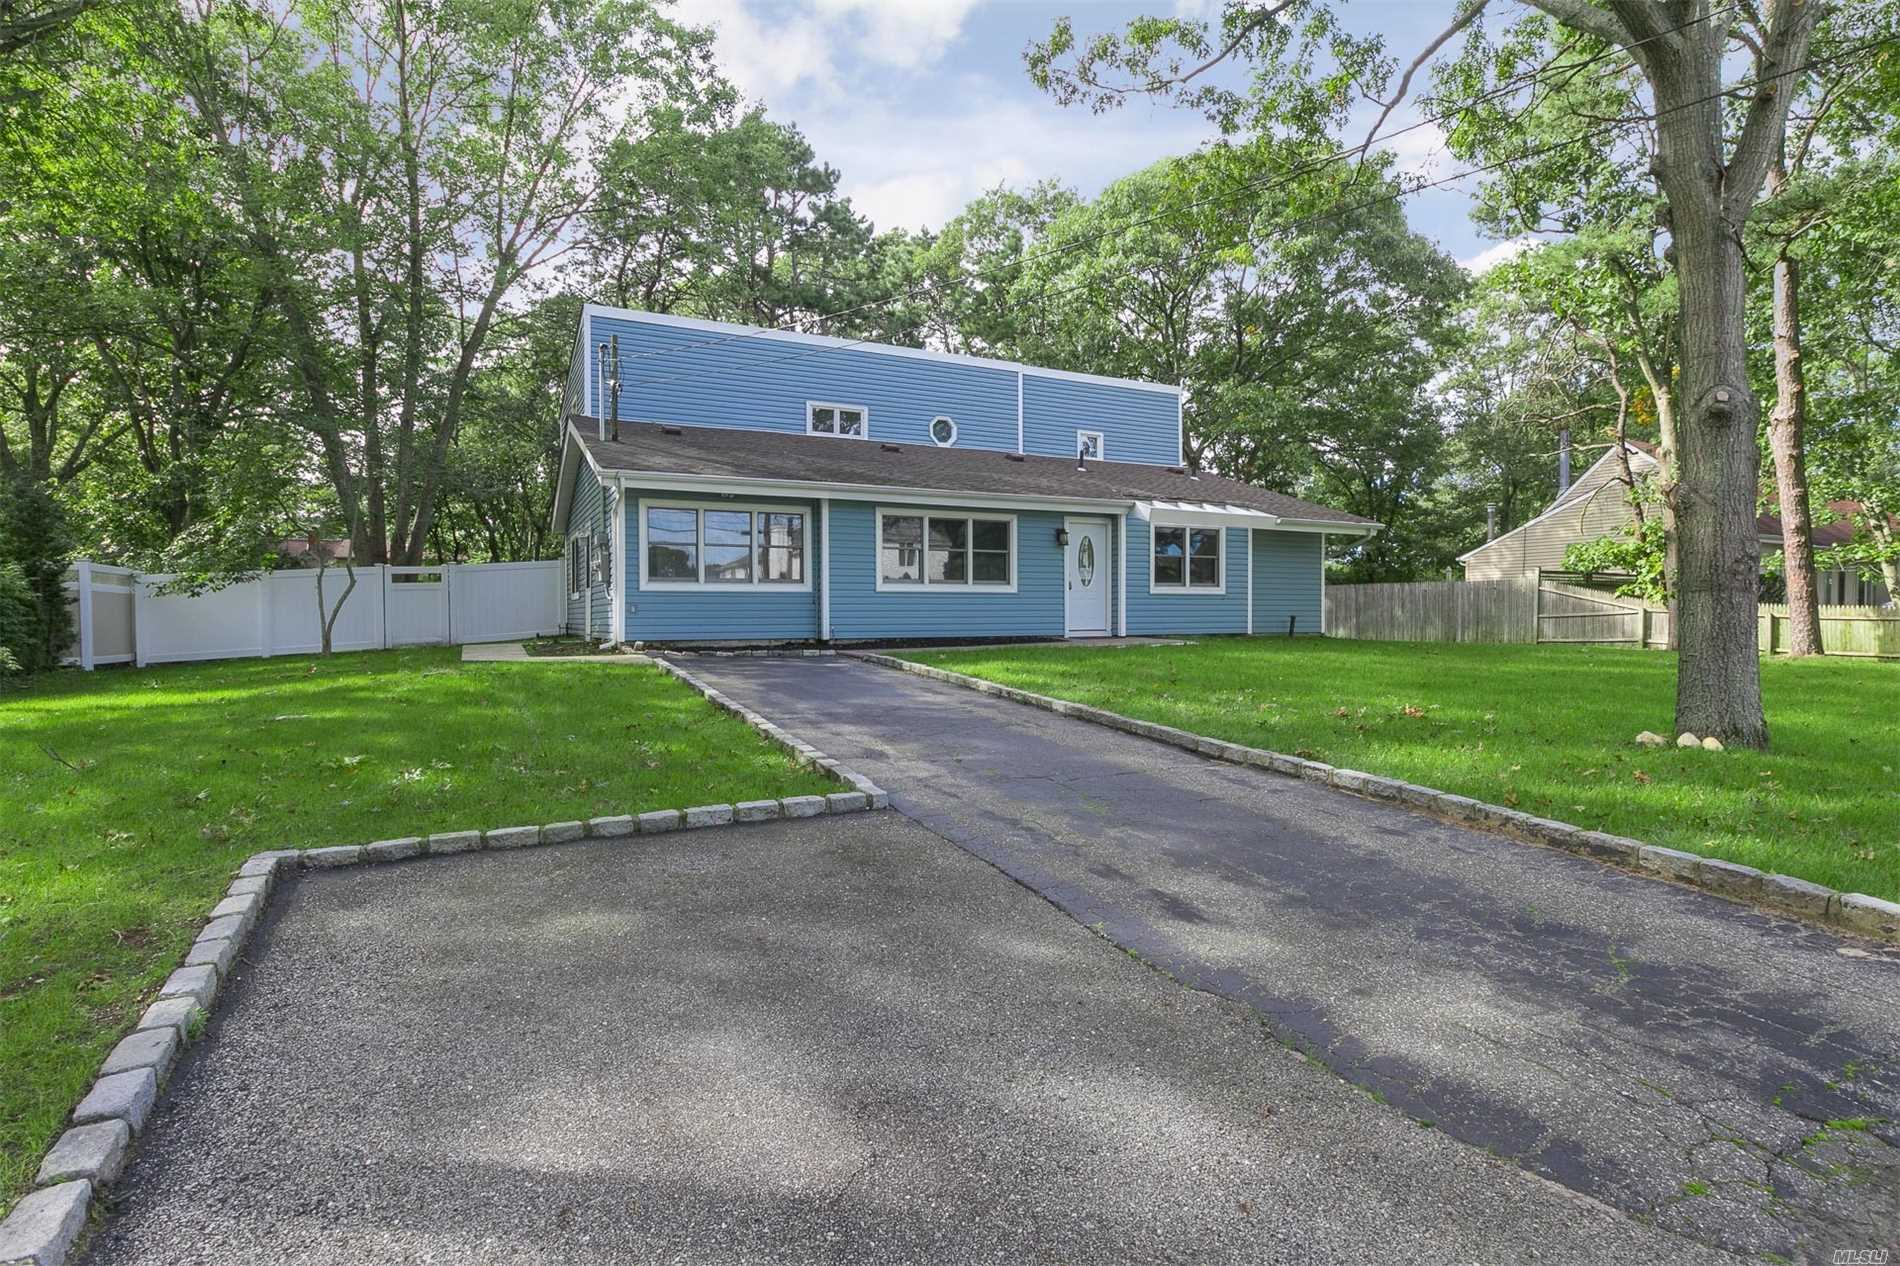 Totally Updated, Unique House:Brand New Kitchen W/Granite & Ss Appliances, All New Ceramic & Wood Floors, 3 Full Baths, Newer Roof, Siding, Windows & Doors, Large Cleared Property, New Grass, Inground Sprinklers & Spacious Deck & Patio For Entertaining. Open Floor Plan, Ground Floor Master Bedroom, Minutes To Sachem Schools, Highways & Lirr. Unique Location W/Public Sewers. Its Worth A Viewing, Don't Windshield & Miss Out, A Much Larger House. This Interior Is A Must See !!